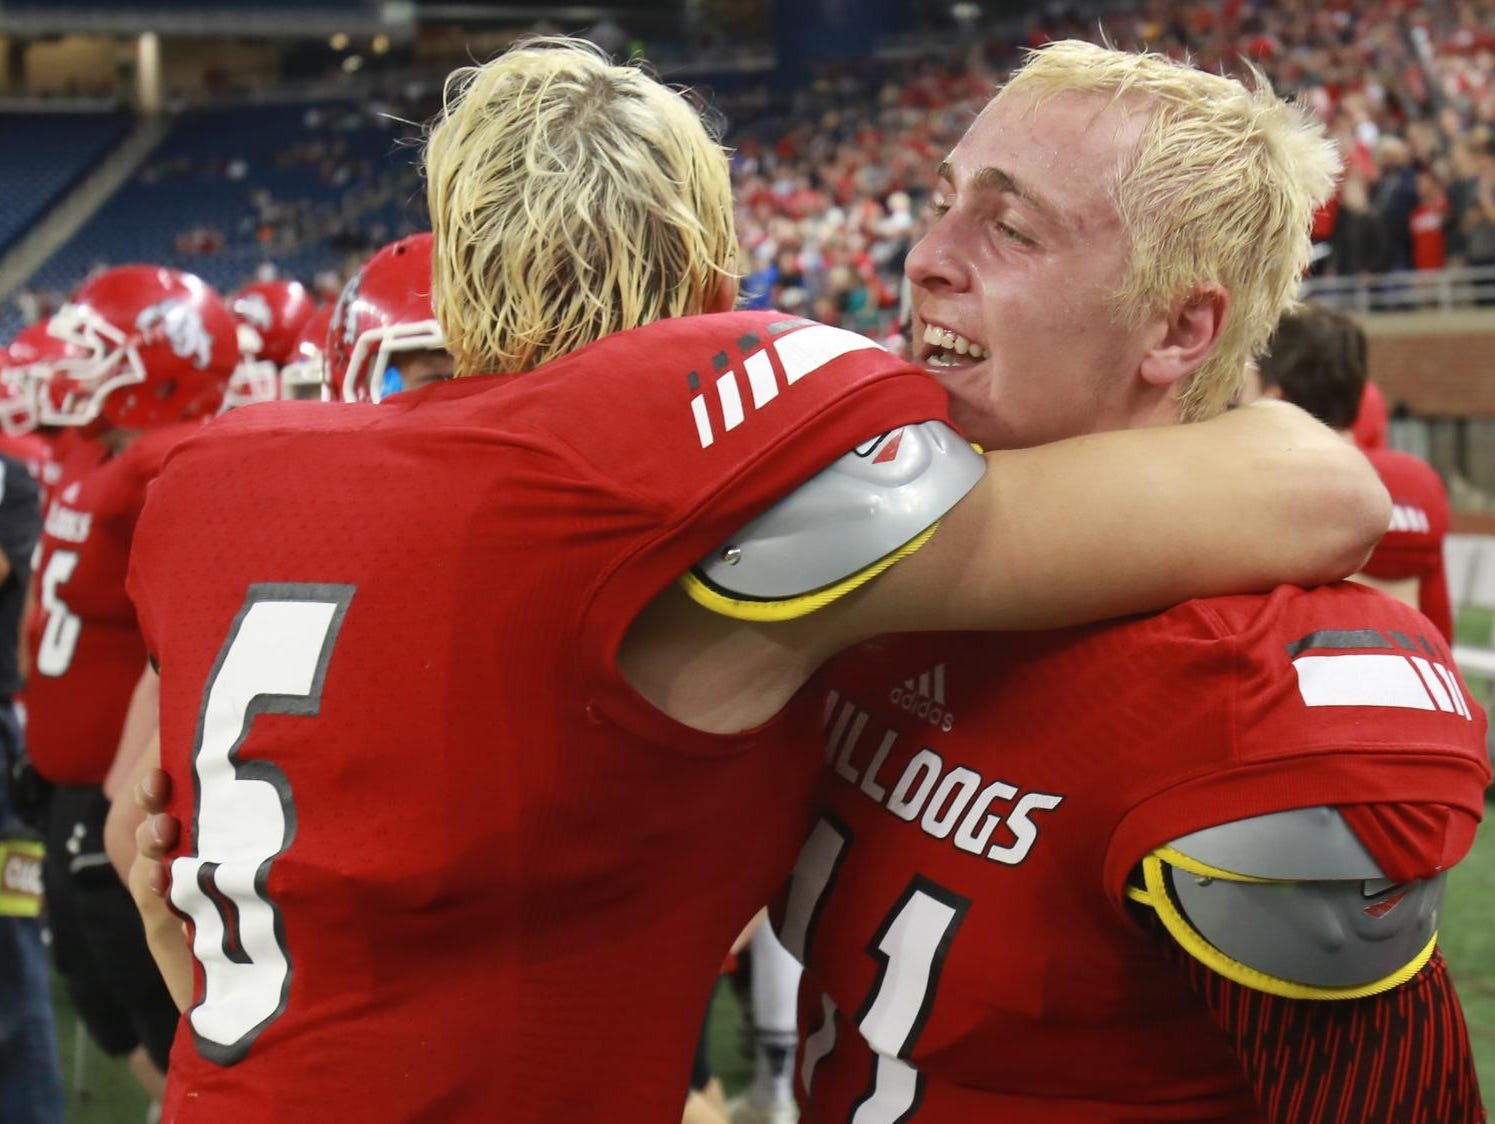 Romeo QB Paul Hurley, right, hugs John Houbeck after defeating Detroit Cass Tech, 41-27, during the Division 1 finals at Ford Field in Detroit on Saturday.